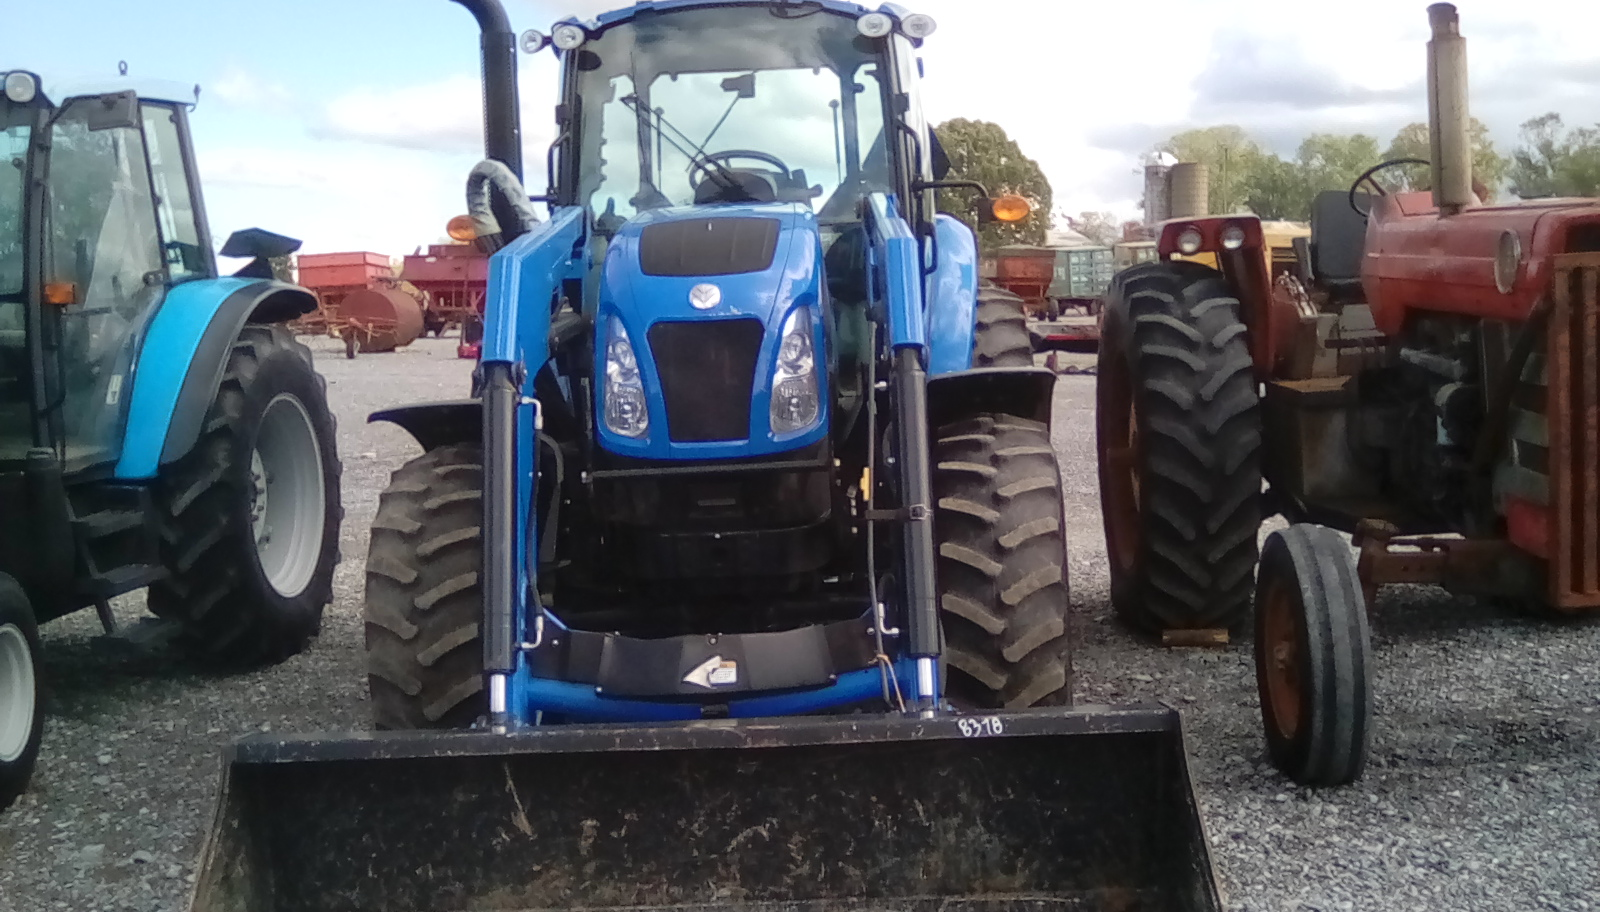 NEW HOLLAND TS6.120 TRACTOR 4X4 W/ CAB W/ LOADER Image